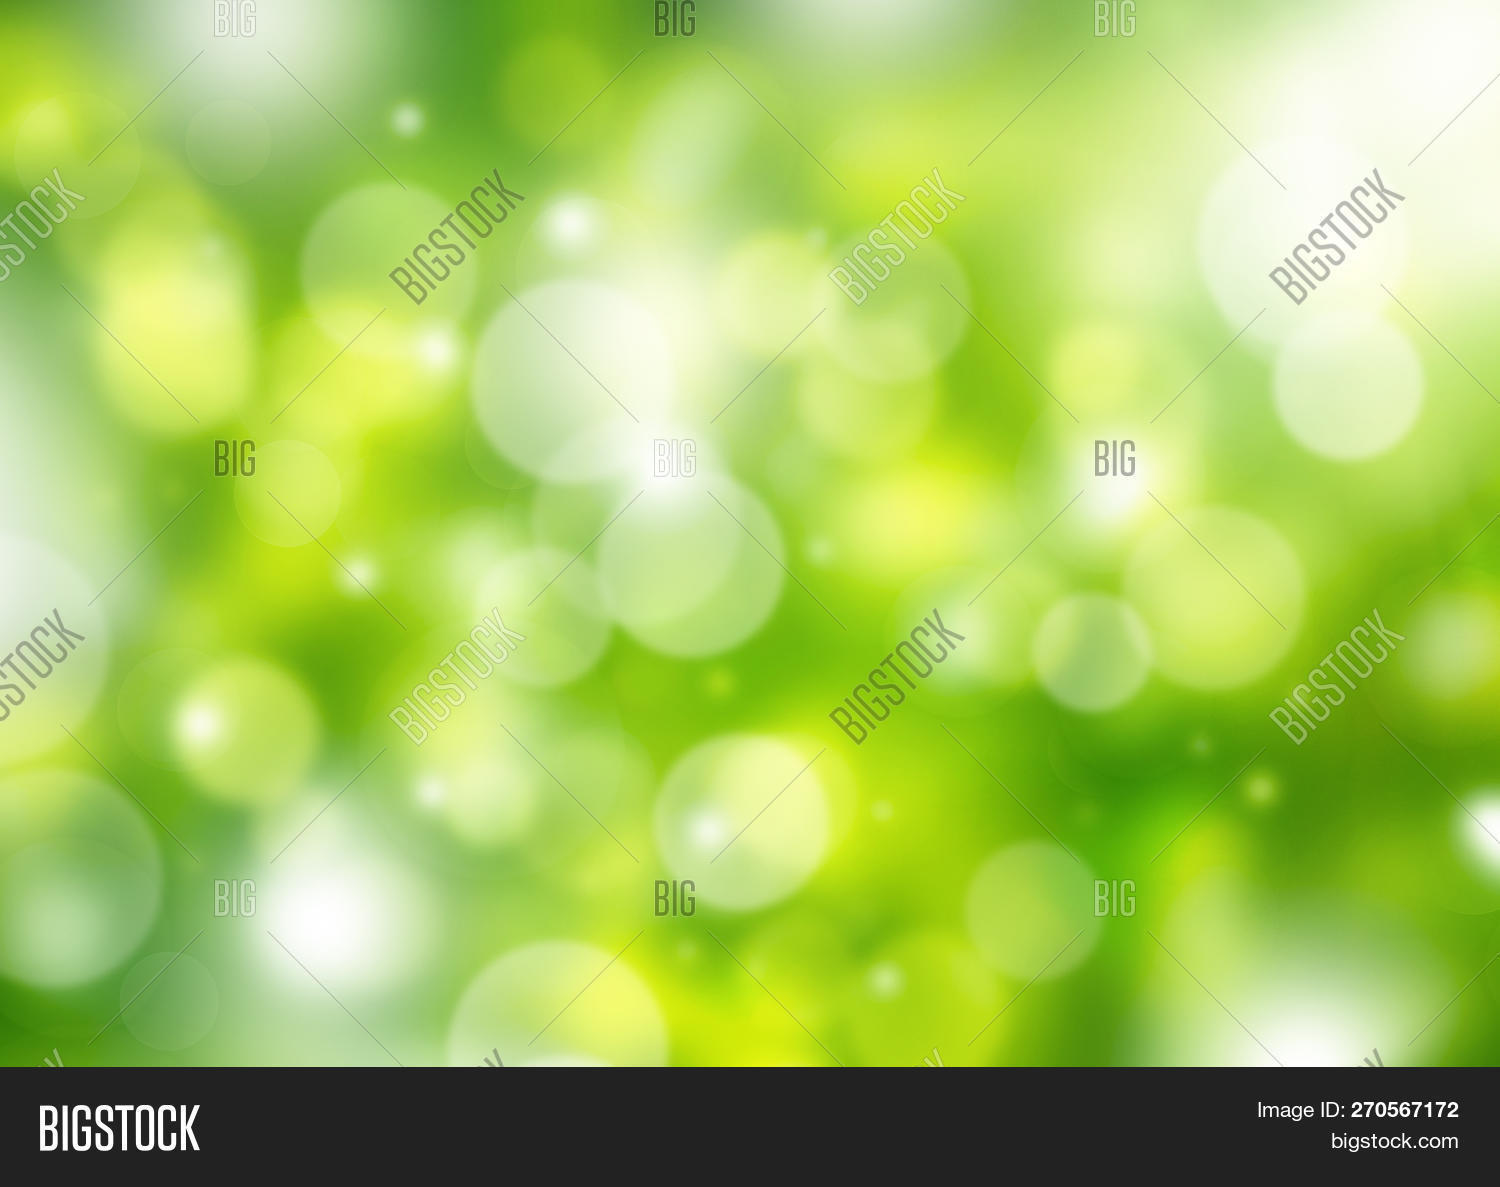 Background Nature Image Photo Free Trial Bigstock